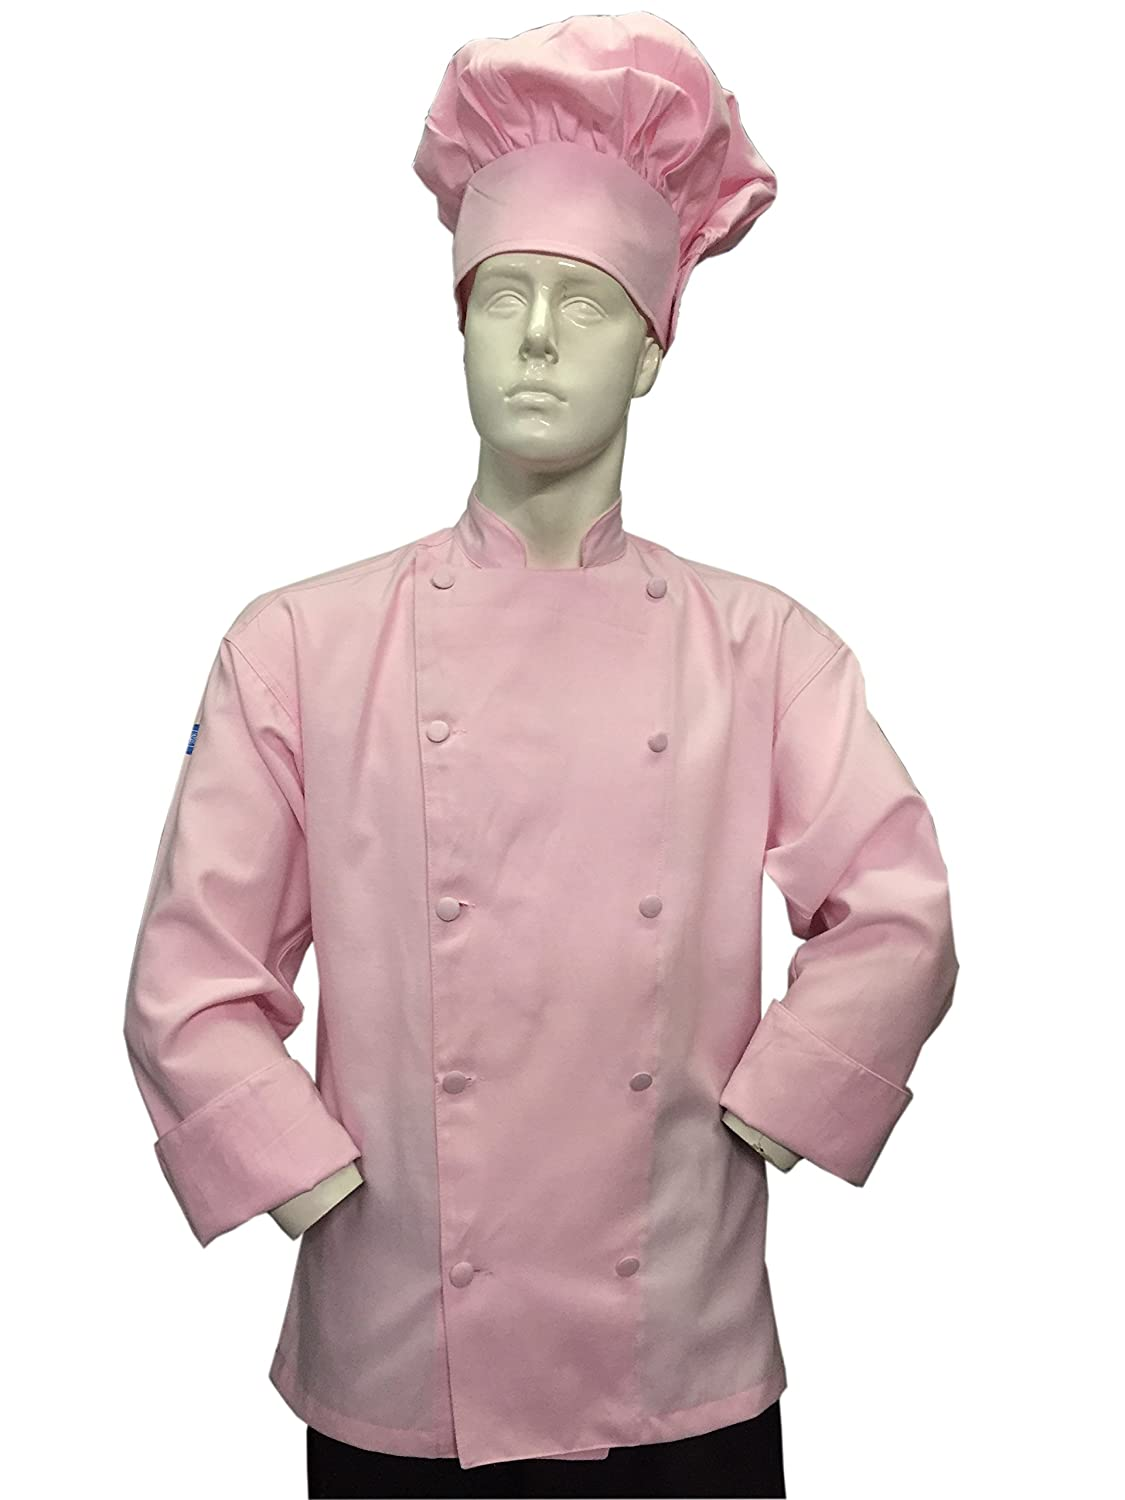 CHEFSKIN Soft Pink Chef Jacket Coat Cool Soft Twill Fabric Beautiful + Hat